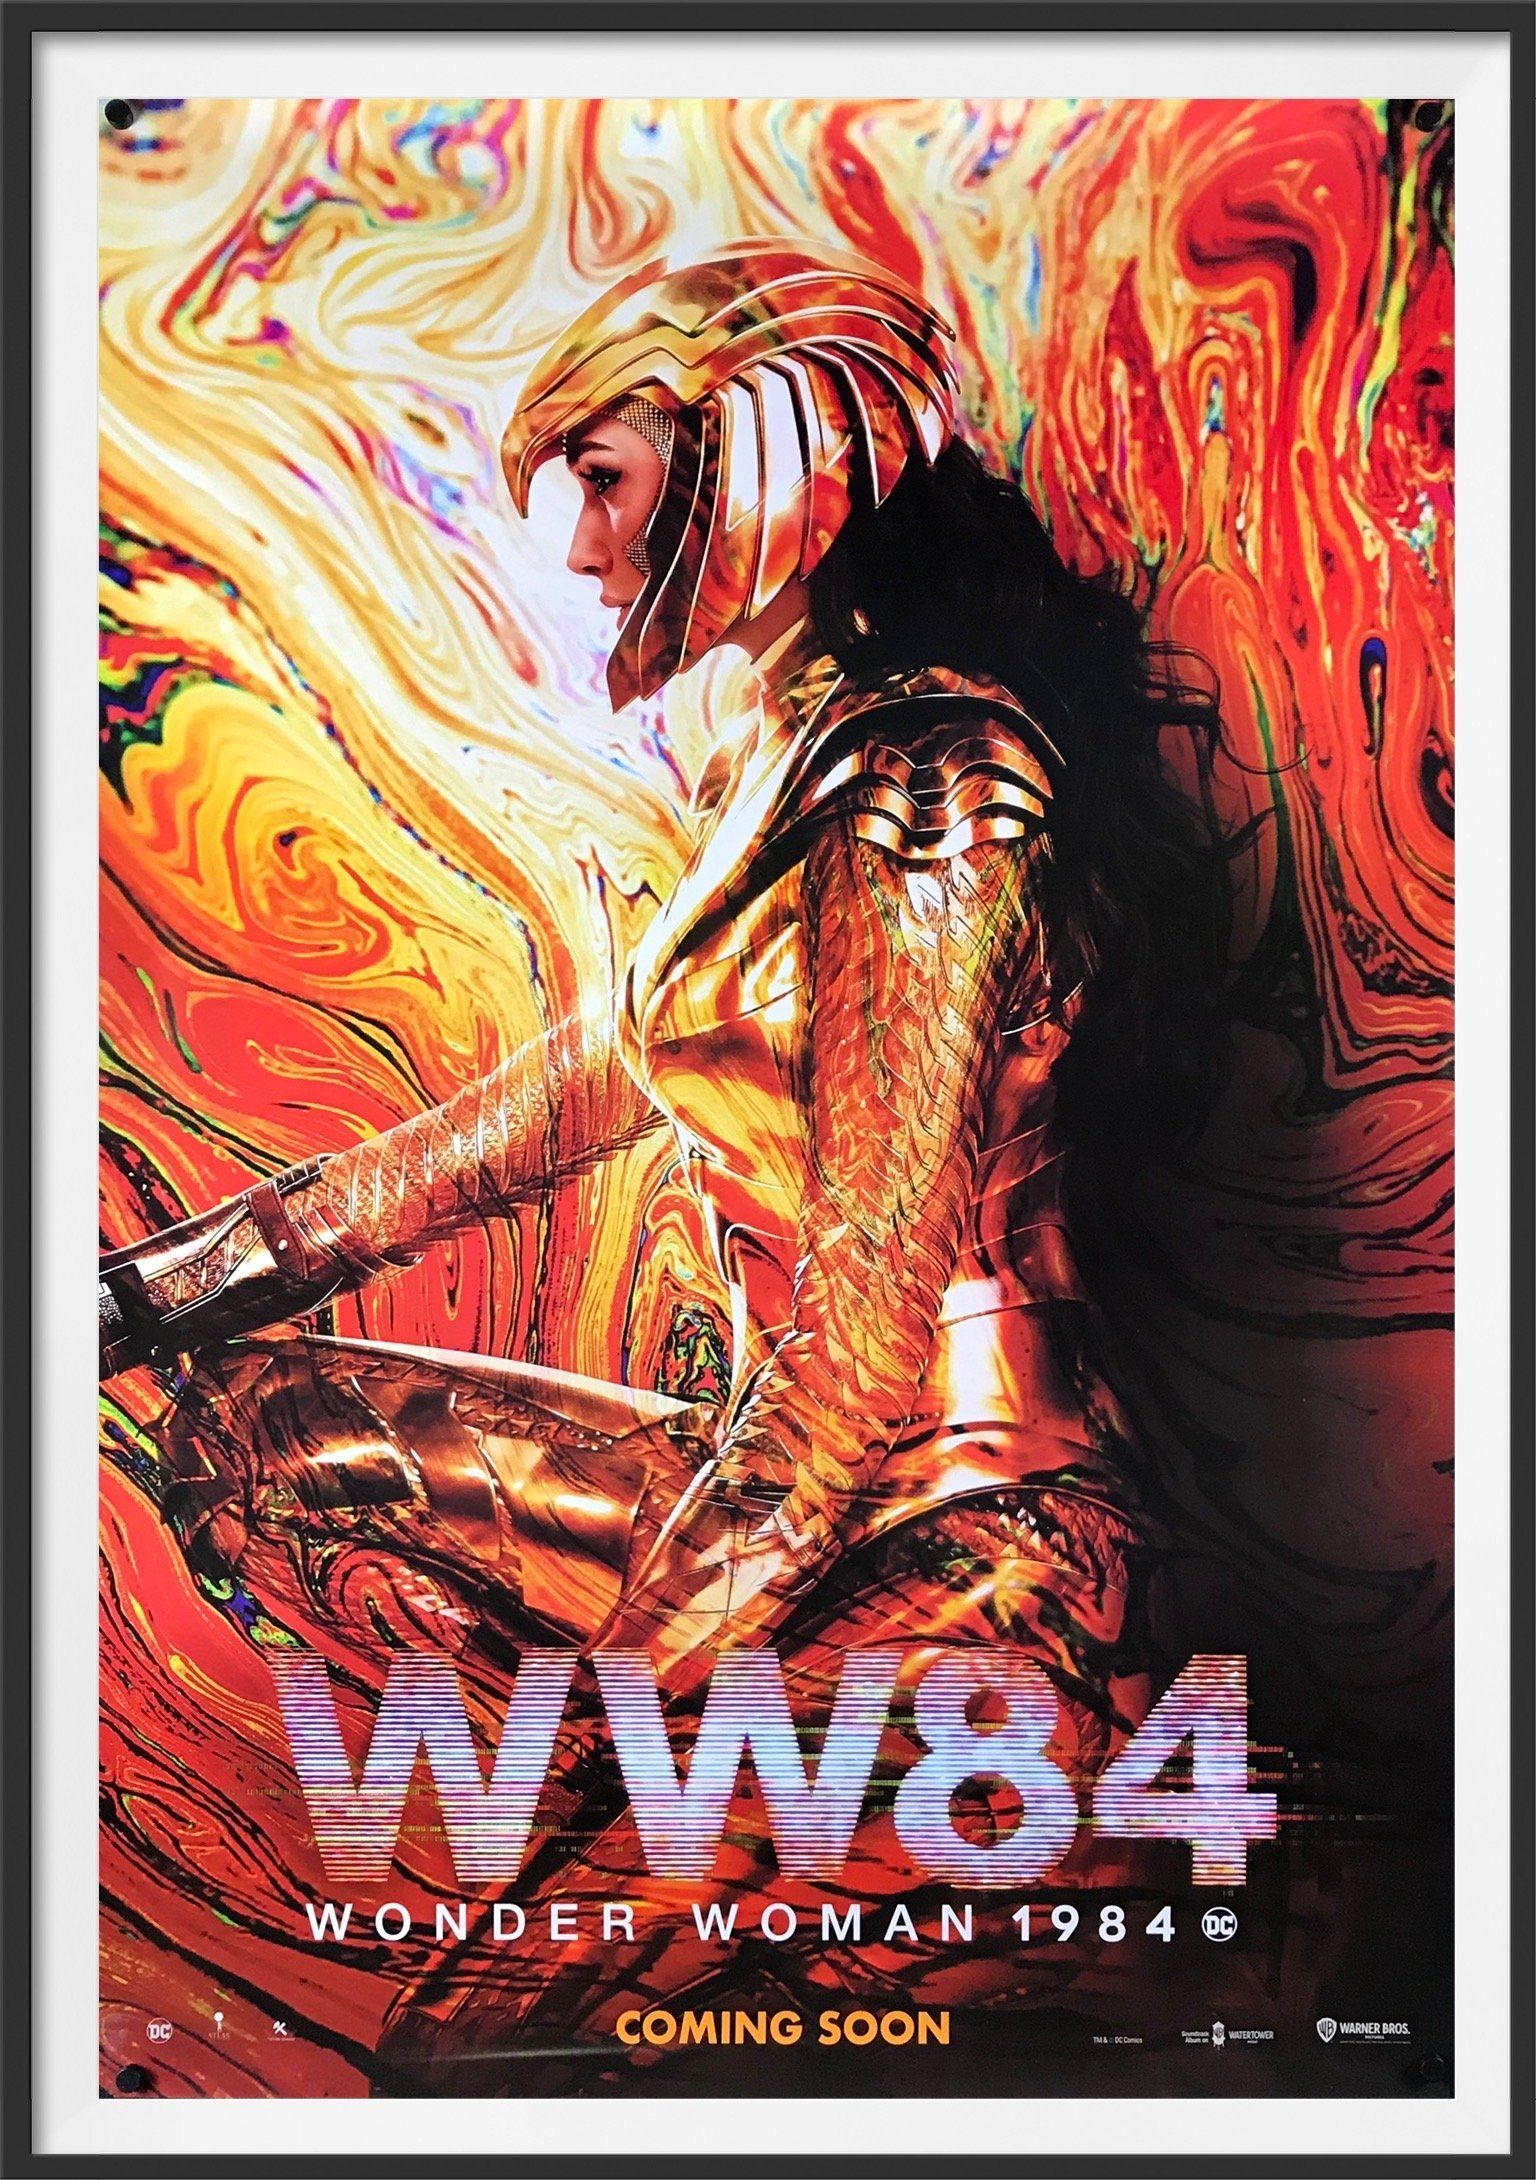 """Condition: Very Good to Excellent. Never folded! Free shipping within the UK. A low flat rate for the rest of the world. Size: 69 cm x 102 cm (27 in x 40 in) A guaranteed original advance one sheet movie poster for the Patty Jenkins' super-hero sequel """"Wonder Woman 1984"""", based upon the D.C. comic books and eventually released in December 2020. With Gal Gadot reprising her role as 'Diana Prince' / 'Wonder Woman', the film also stars Chris Pine as 'Steve Trevor' (despite him having apparently die"""